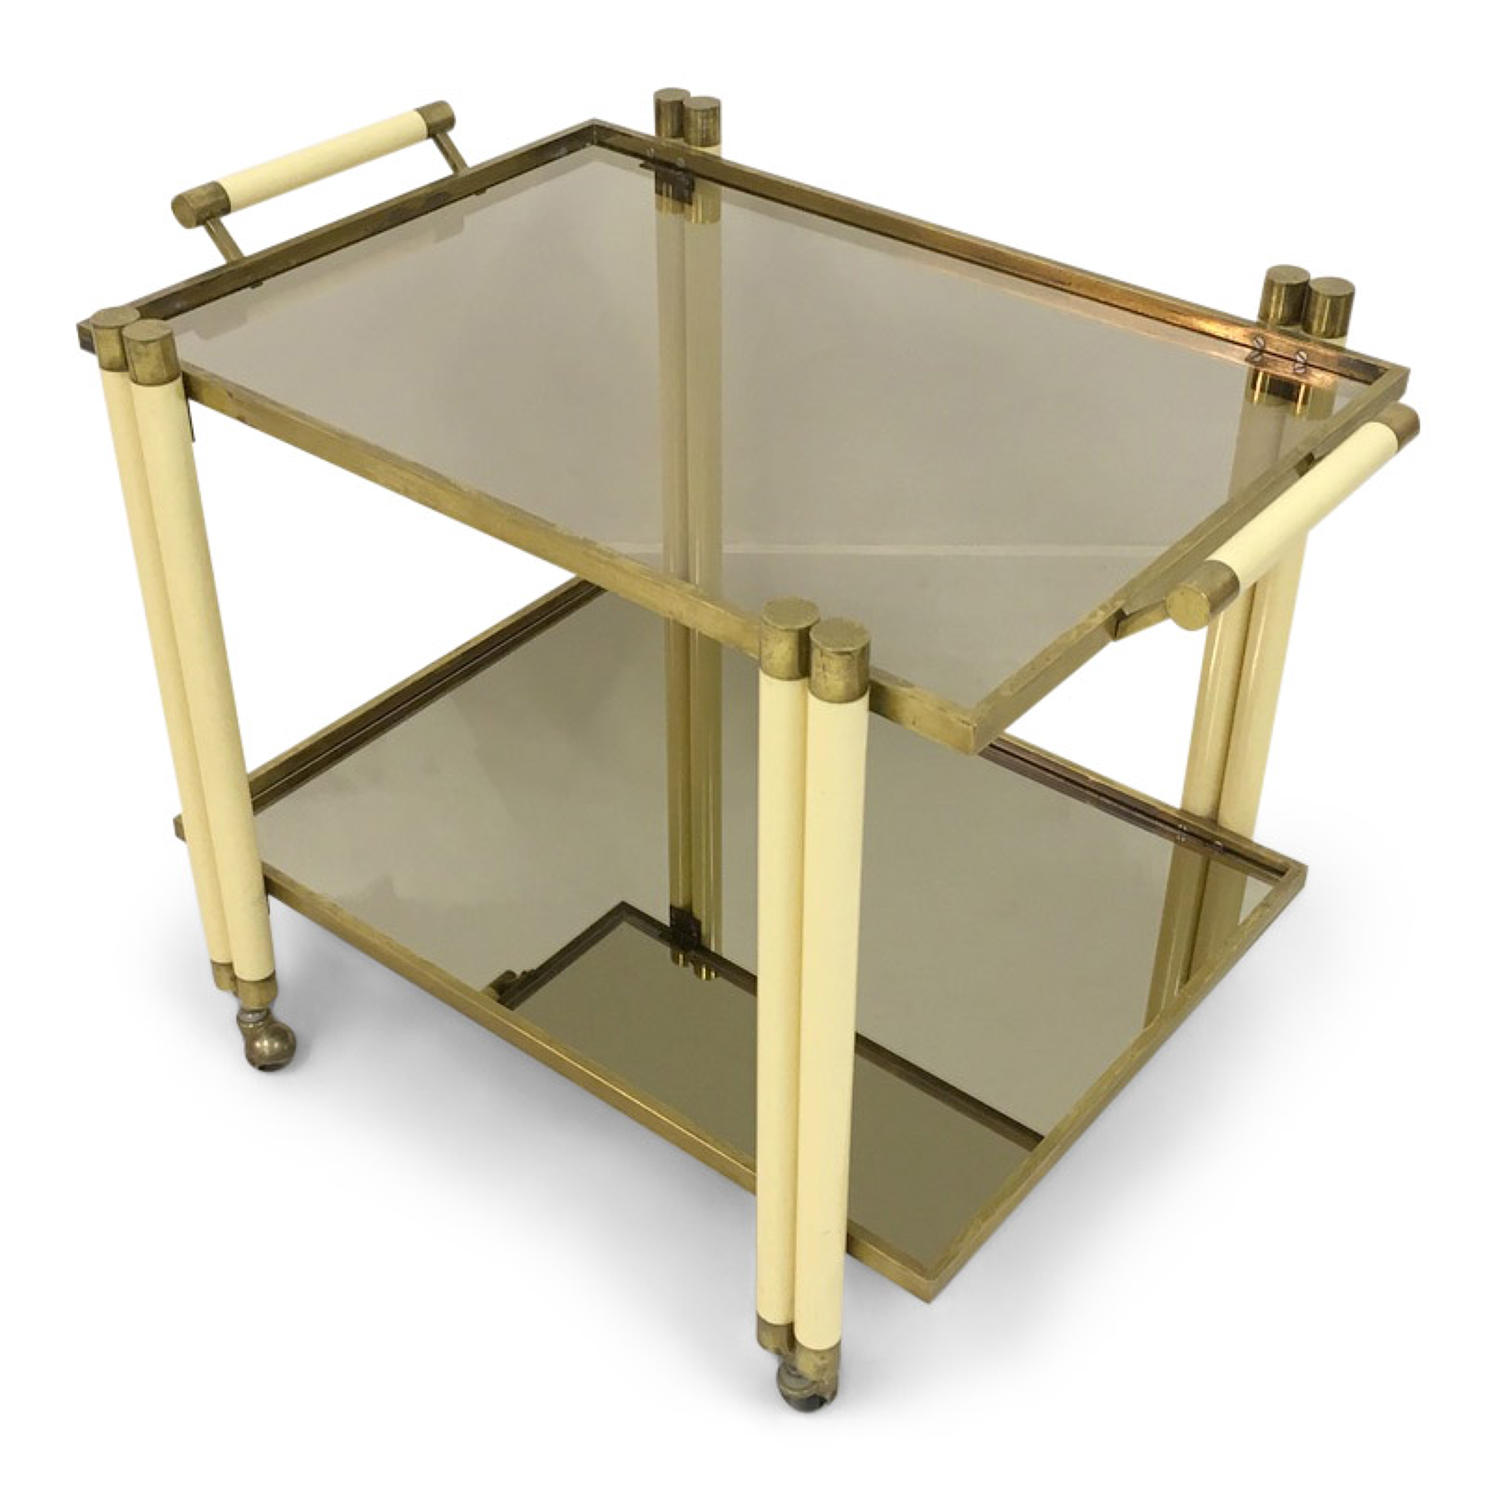 1970s brass trolley by Tomasso Barbi